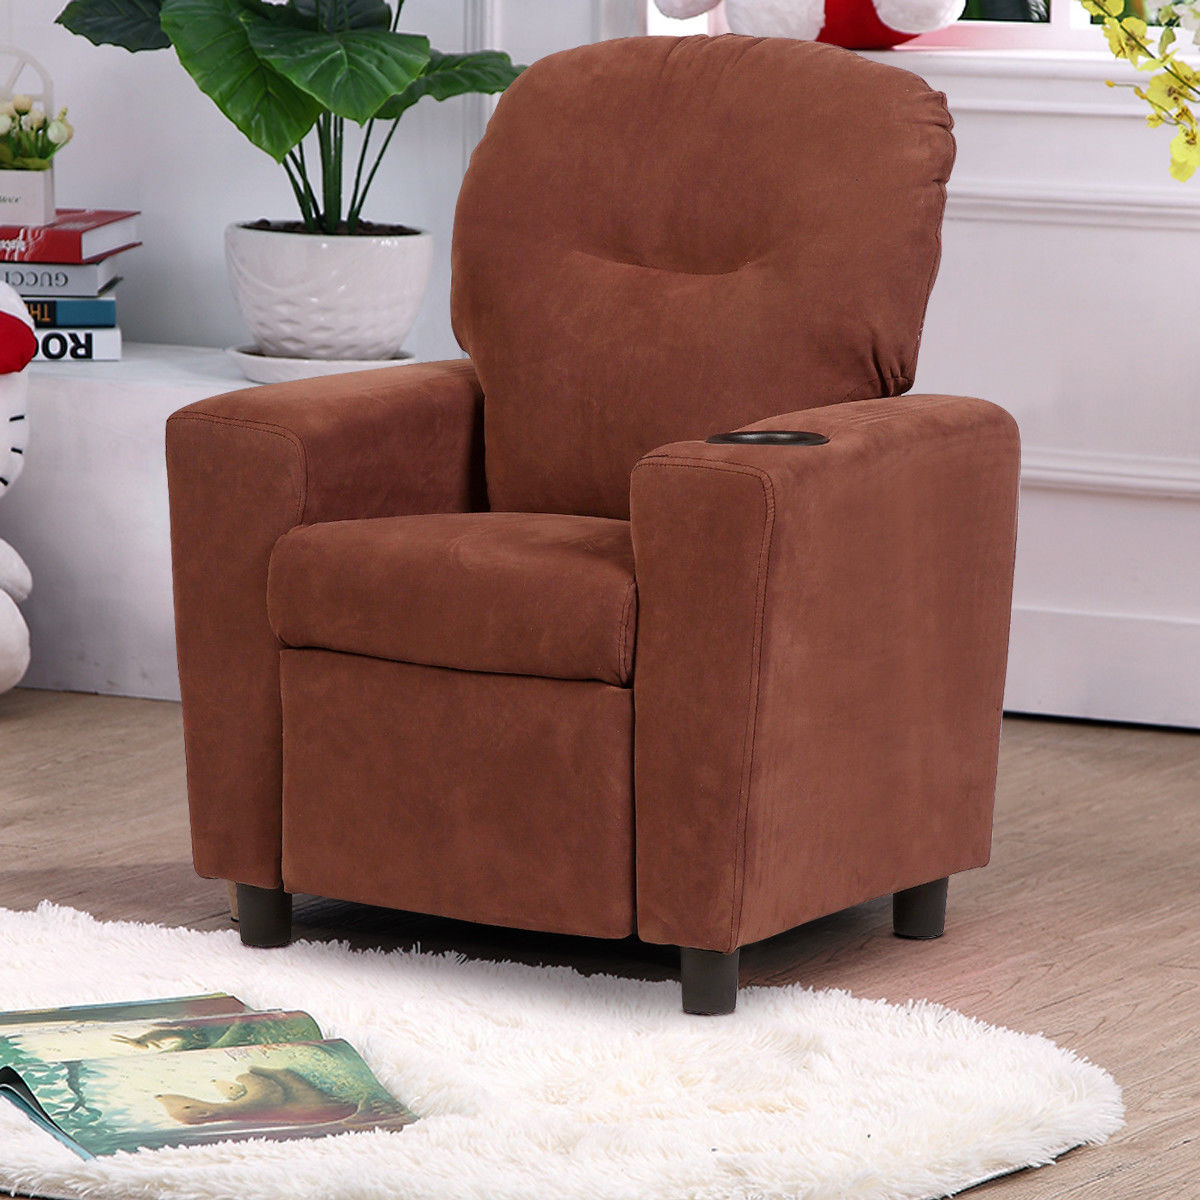 Attrayant Costway Kids Recliner Armchair Childrenu0027s Furniture Sofa Seat Couch Chair W/Cup  Holder Brown